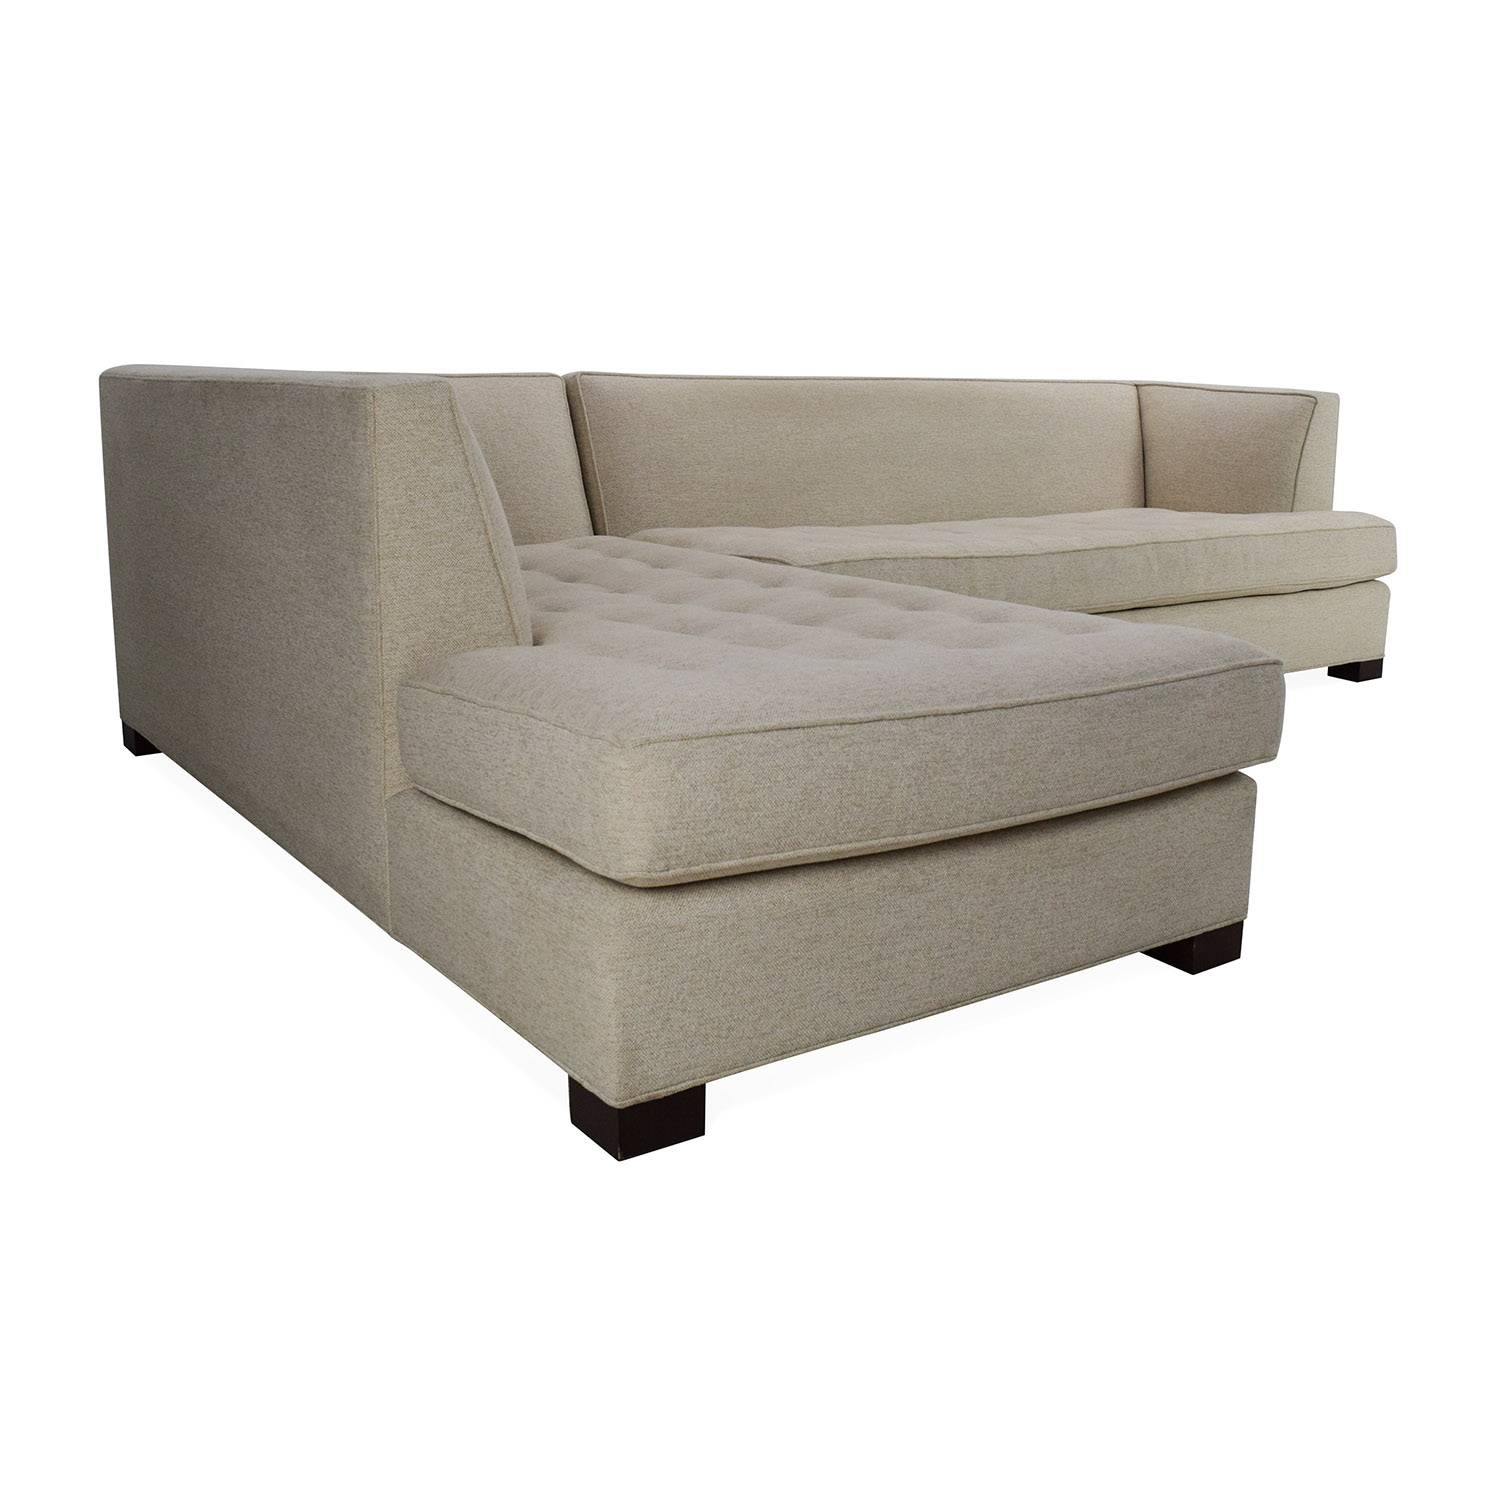 66% Off - Mitchell Gold + Bob Williams Mitchell Gold + Bob pertaining to Gold Sectional Sofa (Image 2 of 25)